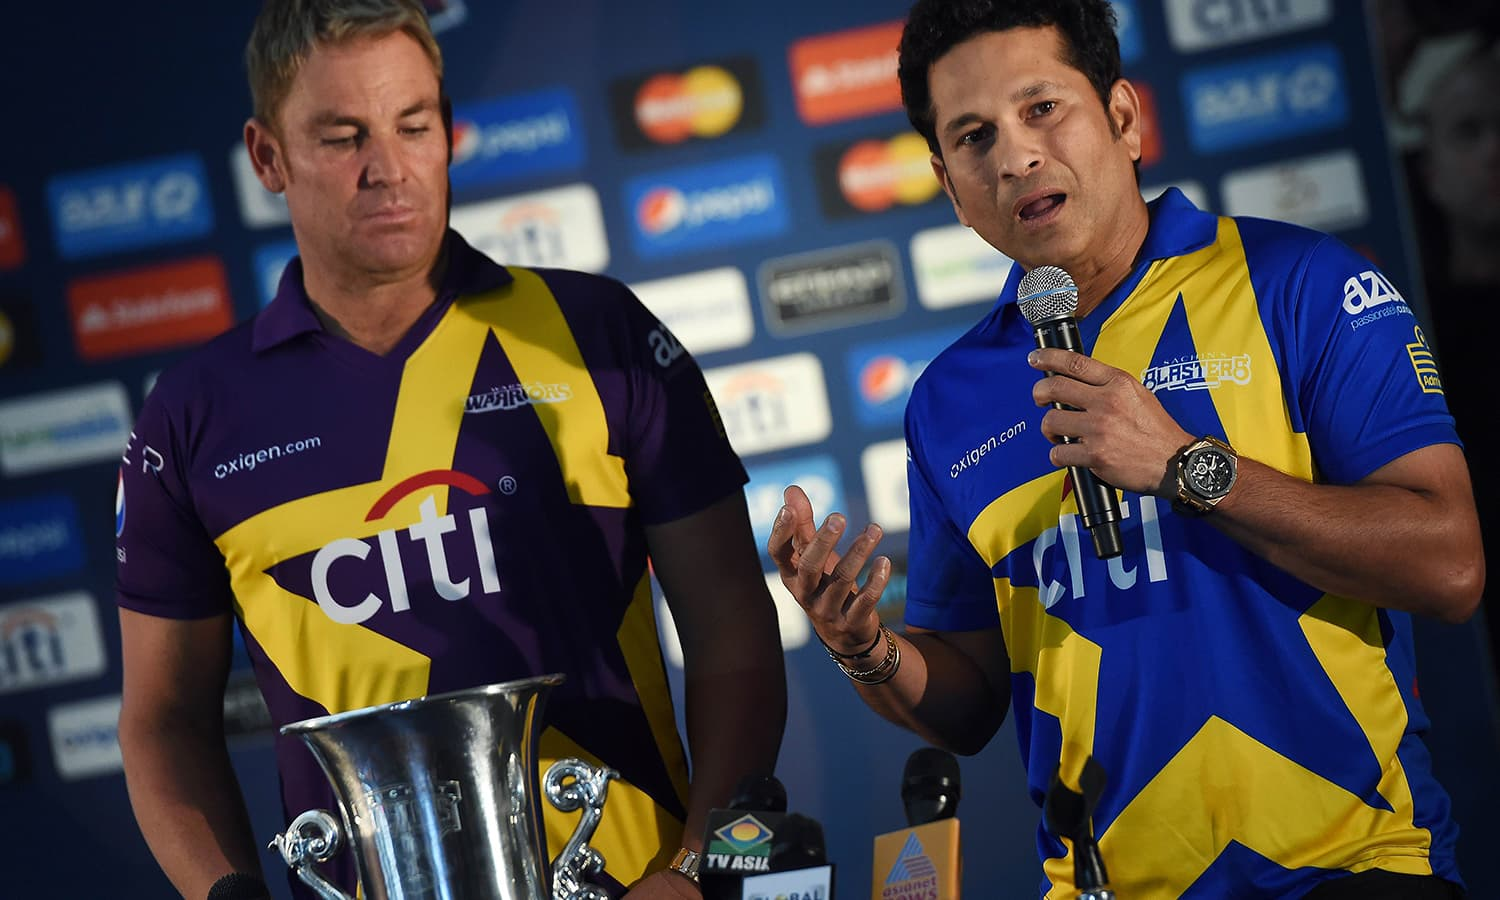 """Retired Indian cricketer Sachin Tendulkar (R) speaks as Australia's Shane Warne looks on during a press conference in New York on November 5, 2015. Tendulkar and Warne will lead a lineup of renowned cricket players from around the world in the inaugural """"Cricket All-Stars,"""" a three-game series to be played in Major League Baseball stadiums in New York , Houston and Los Angeles, to promote cricket the US. AFP PHOTO/JEWEL"""